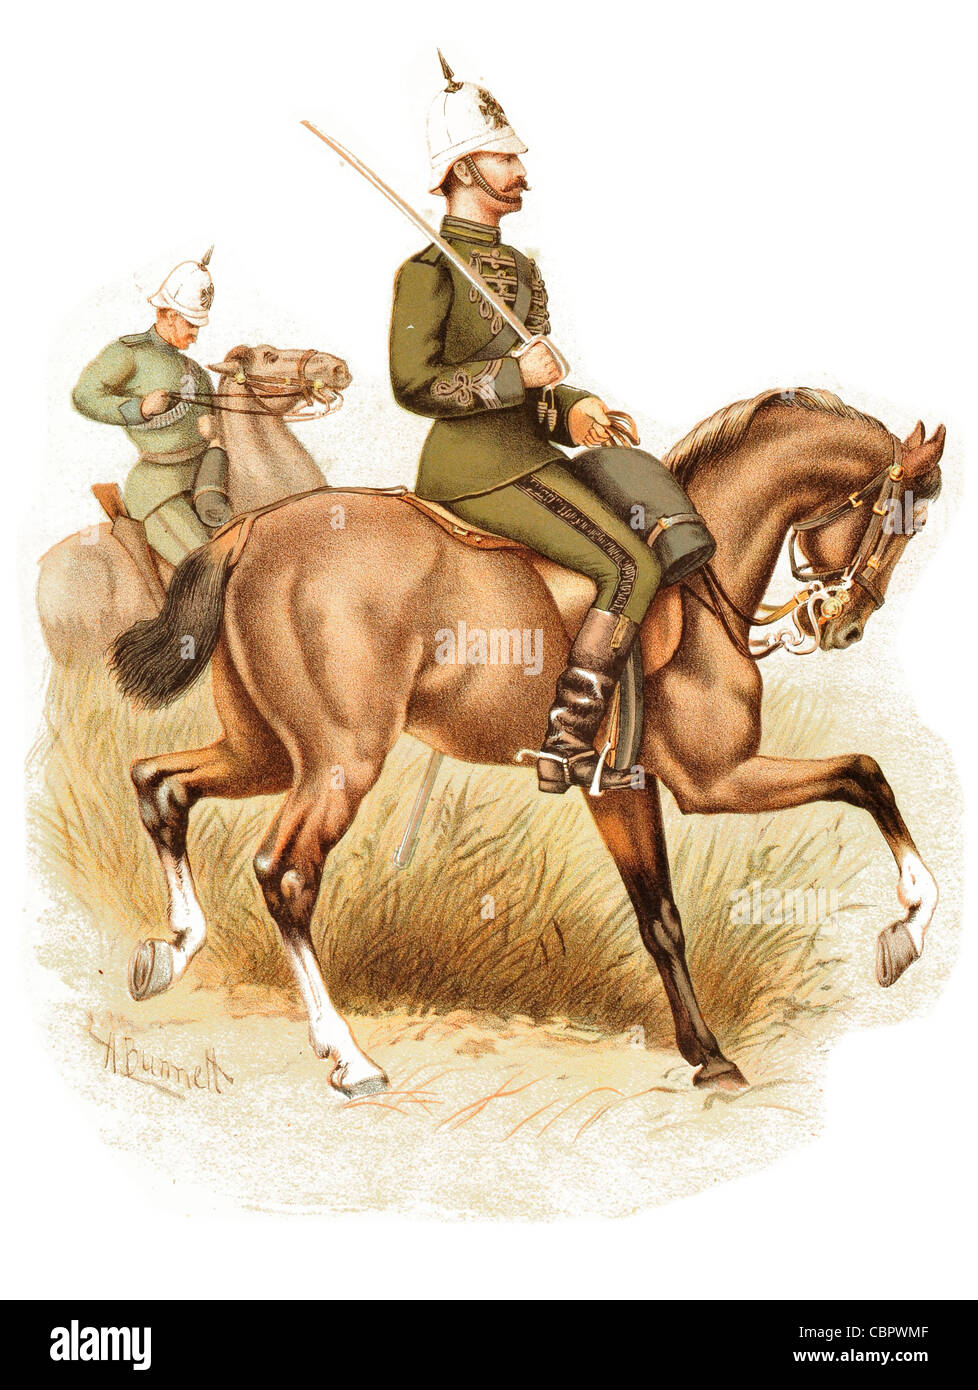 The Cape Mounted Rifles Riflemen  cavalry horse rider charge Hussar - Stock Image